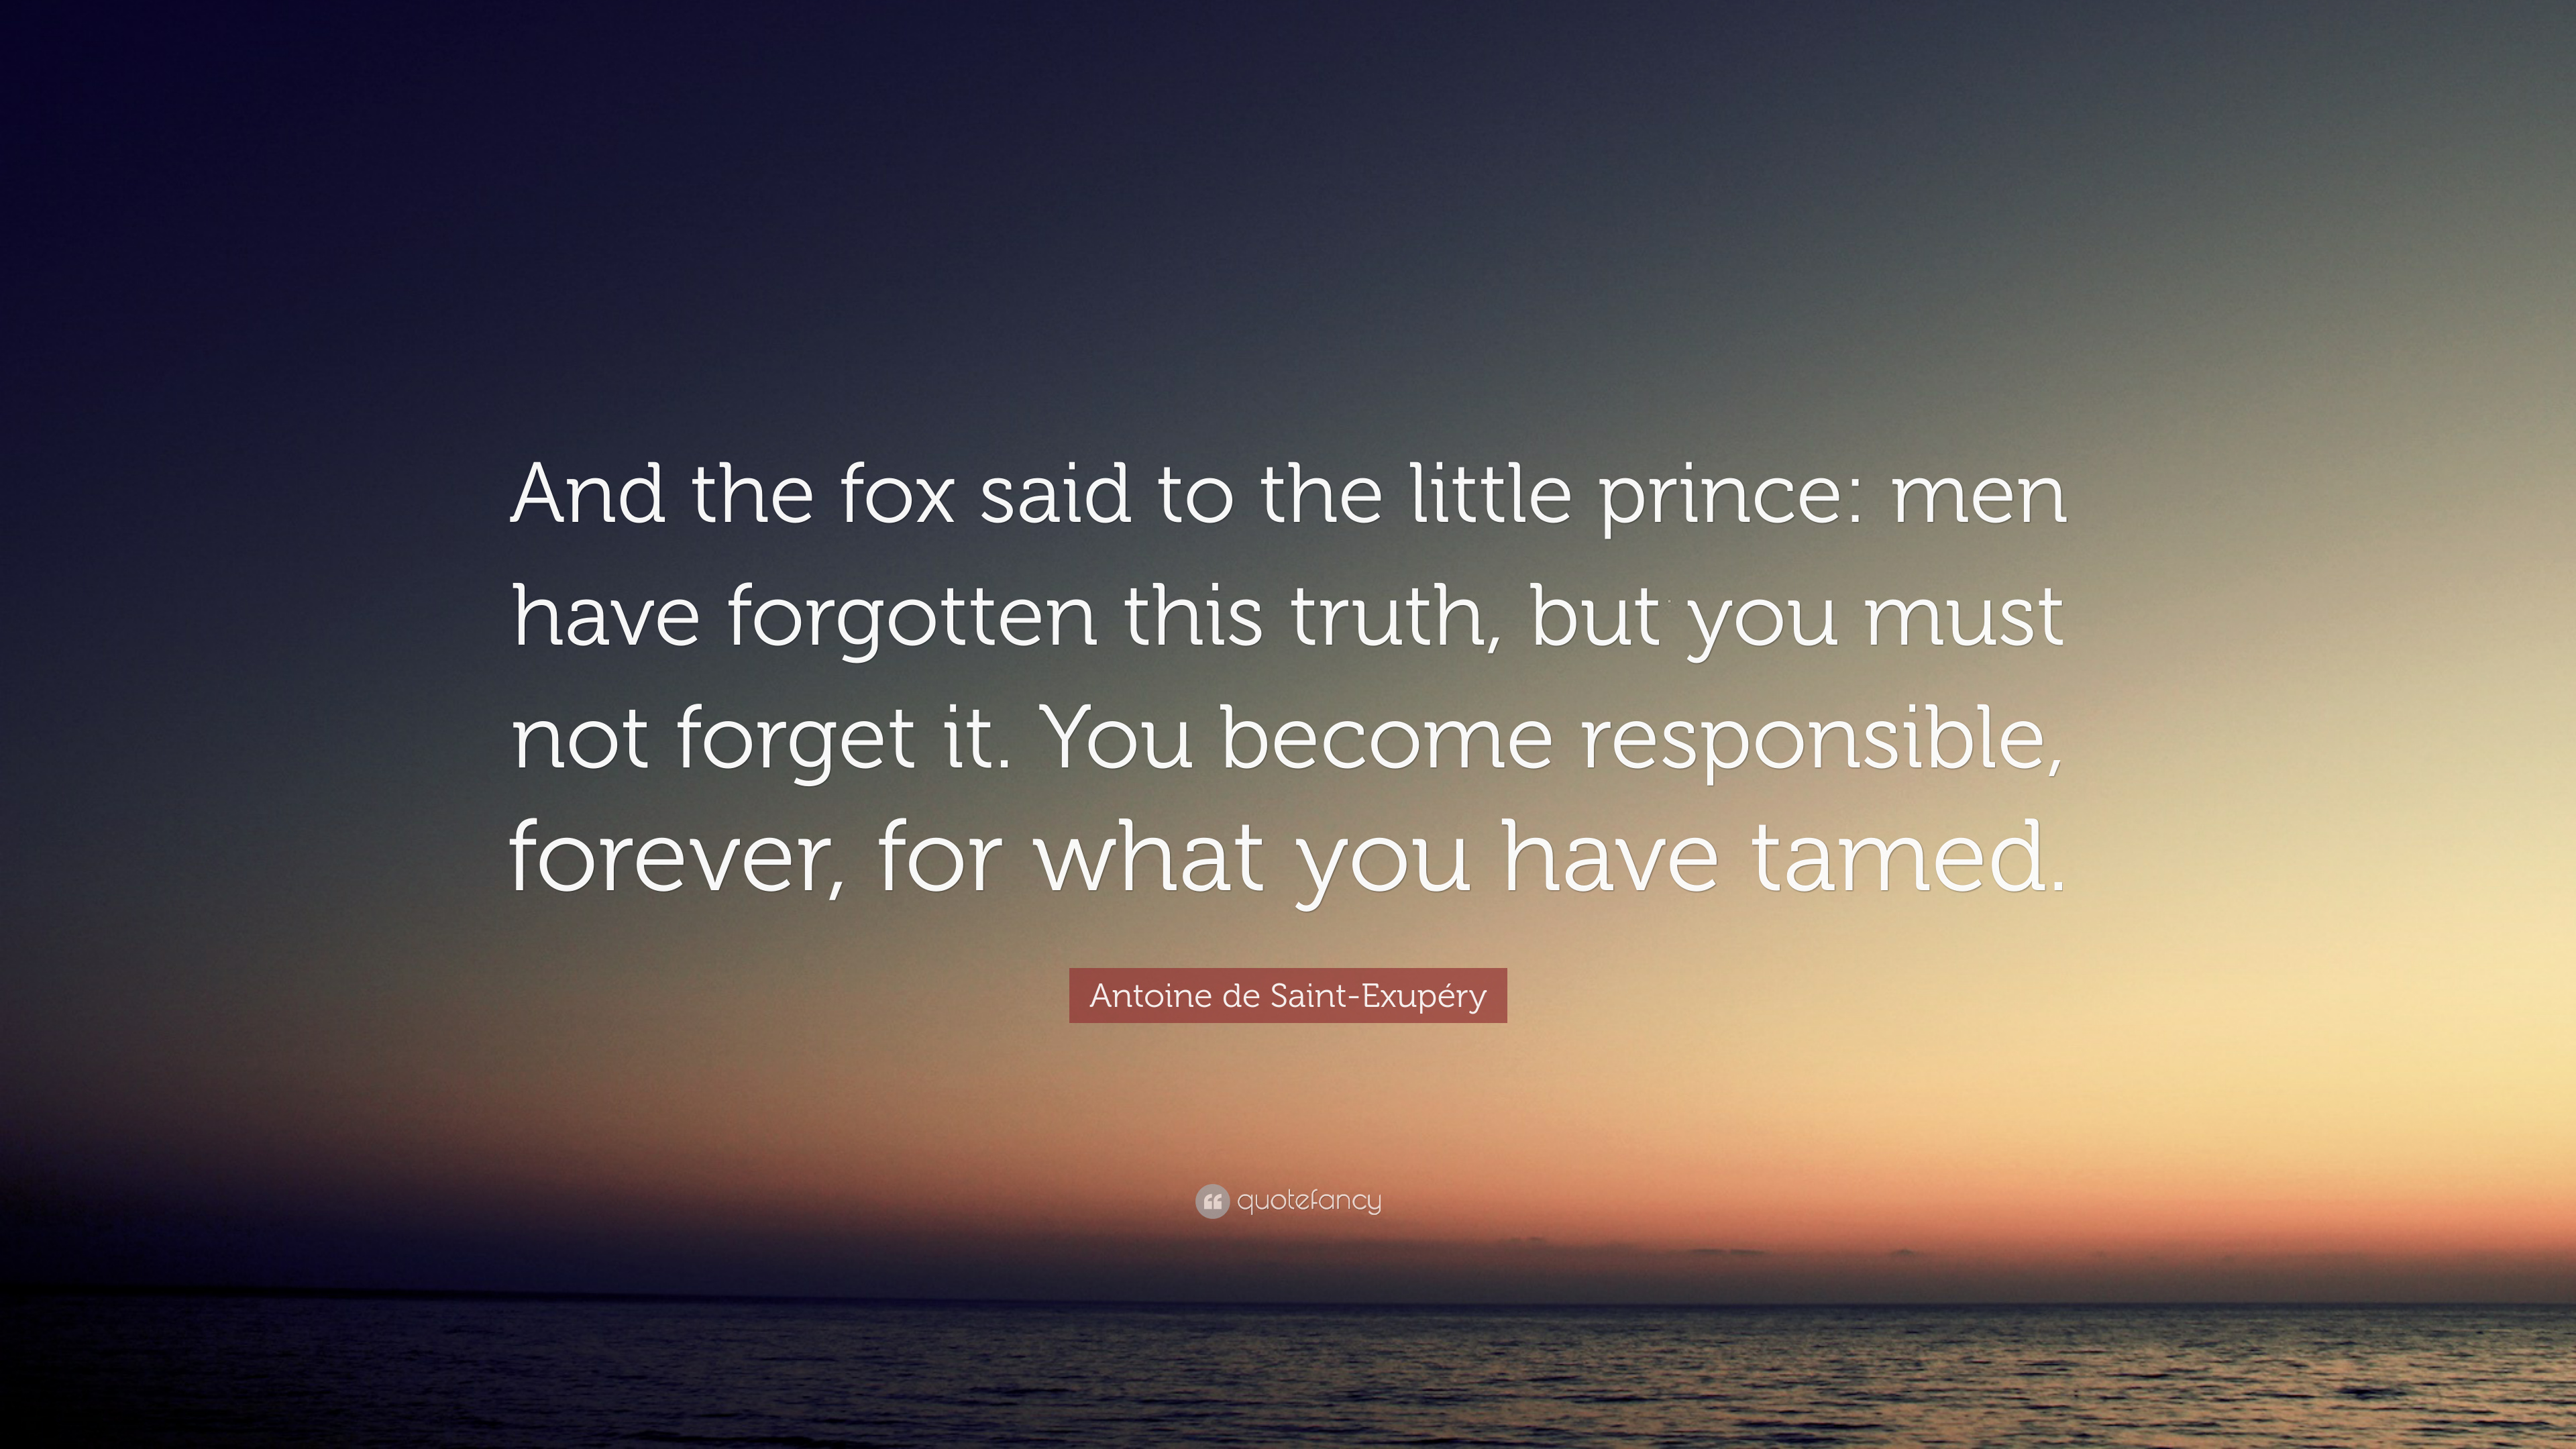 Antoine De Saint Exupery Quote And The Fox Said To The Little Prince Men Have Forgotten This Truth But You Must Not Forget It You Become Responsible 7 Wallpapers Quotefancy